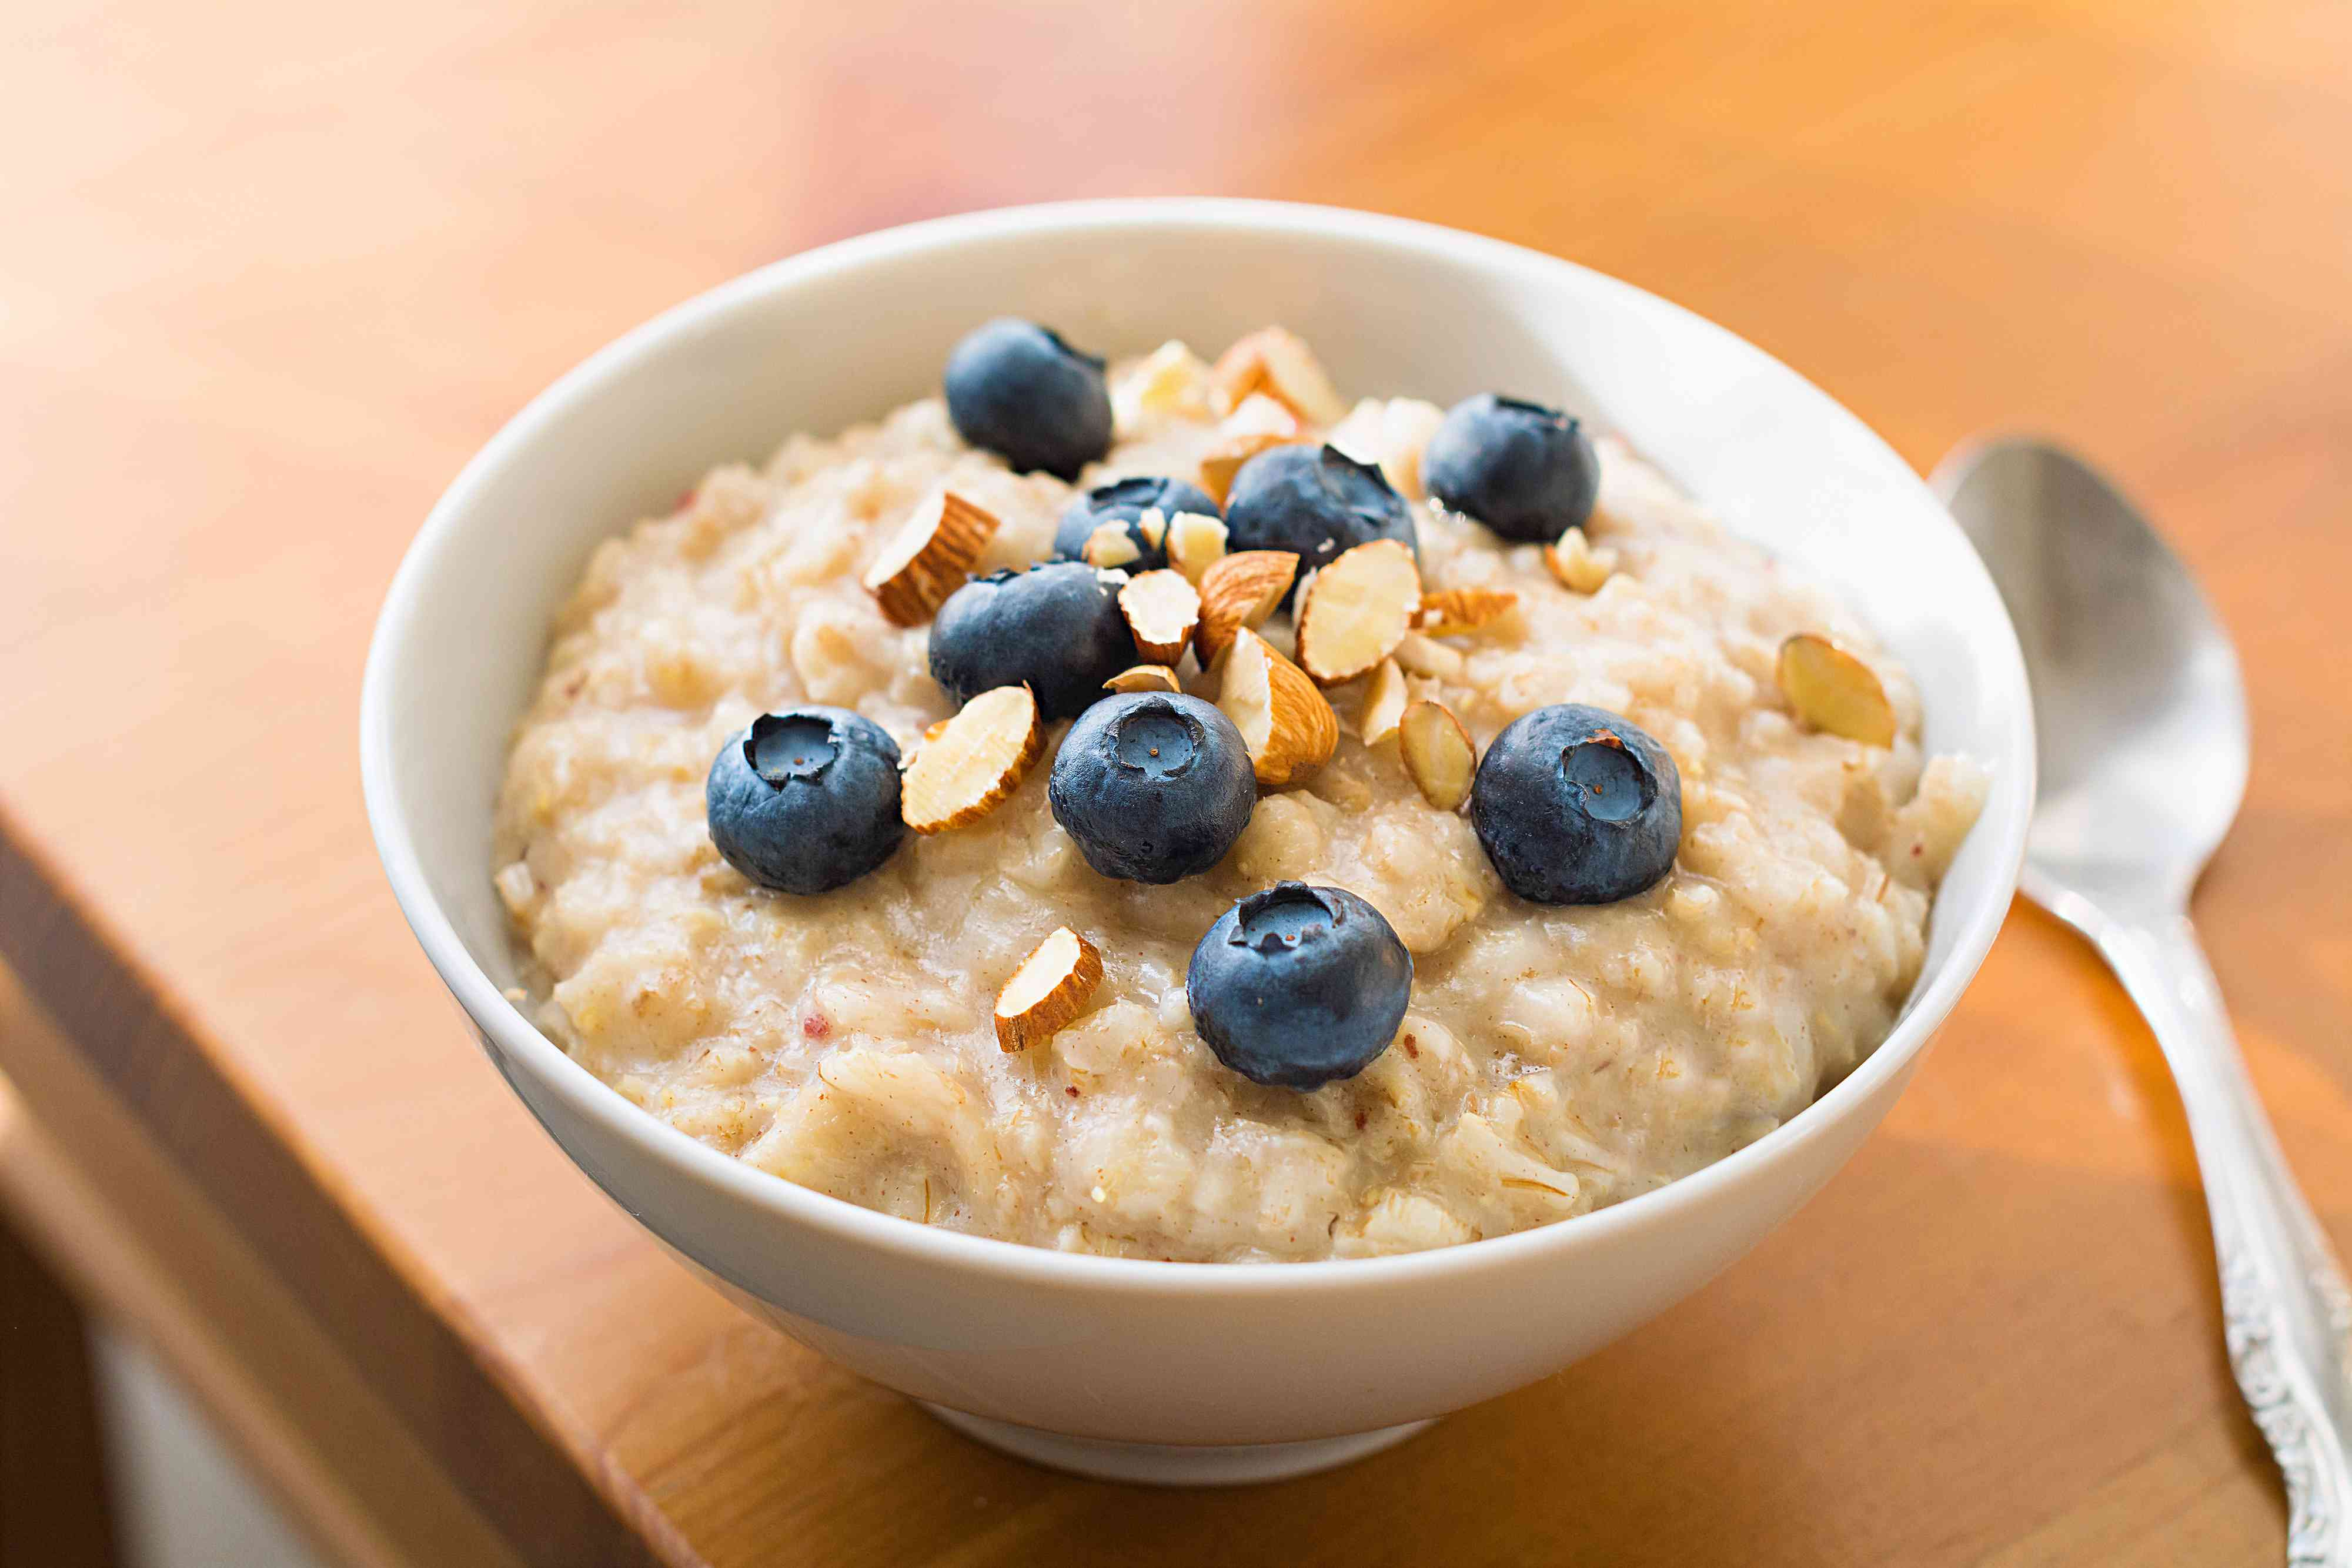 bowl of oatmeal with blueberries and almonds